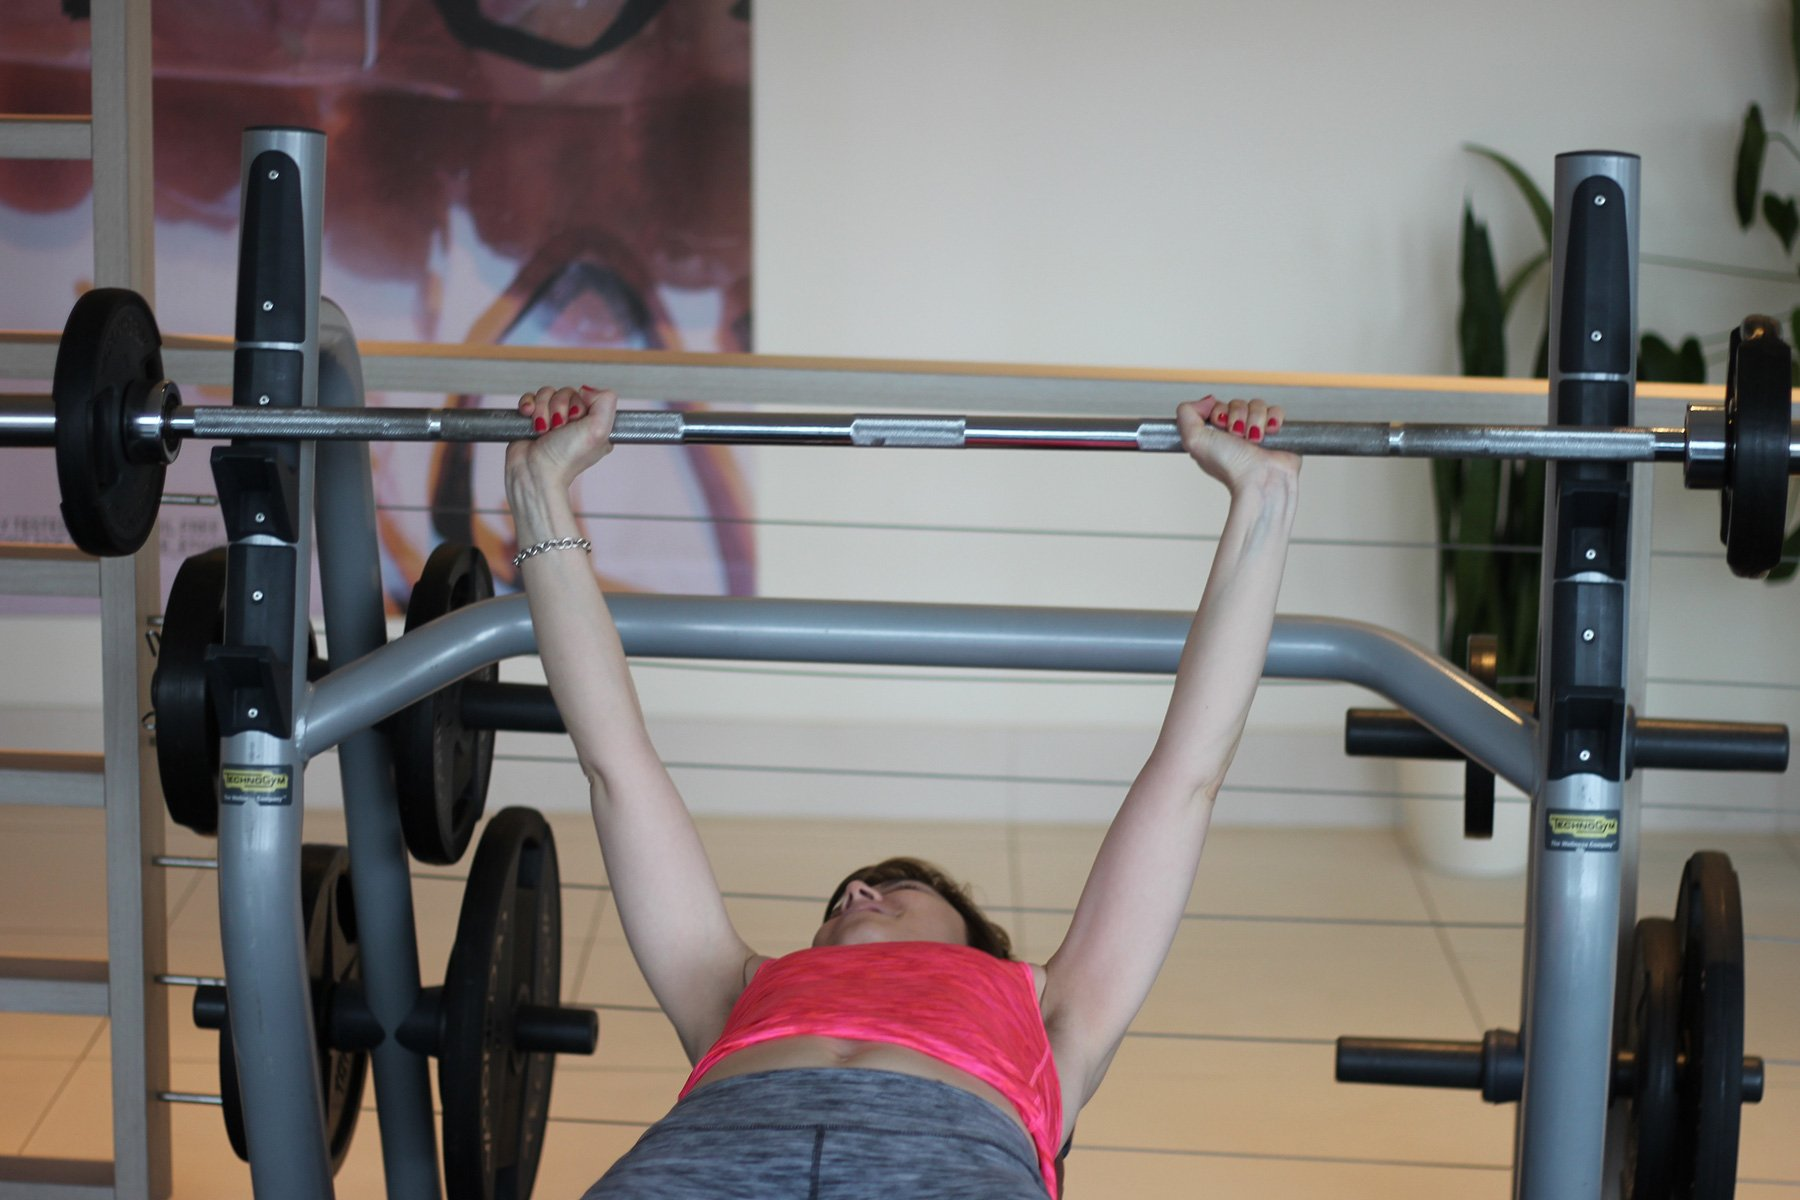 Radisson Blu - Fitnessbereich, Training